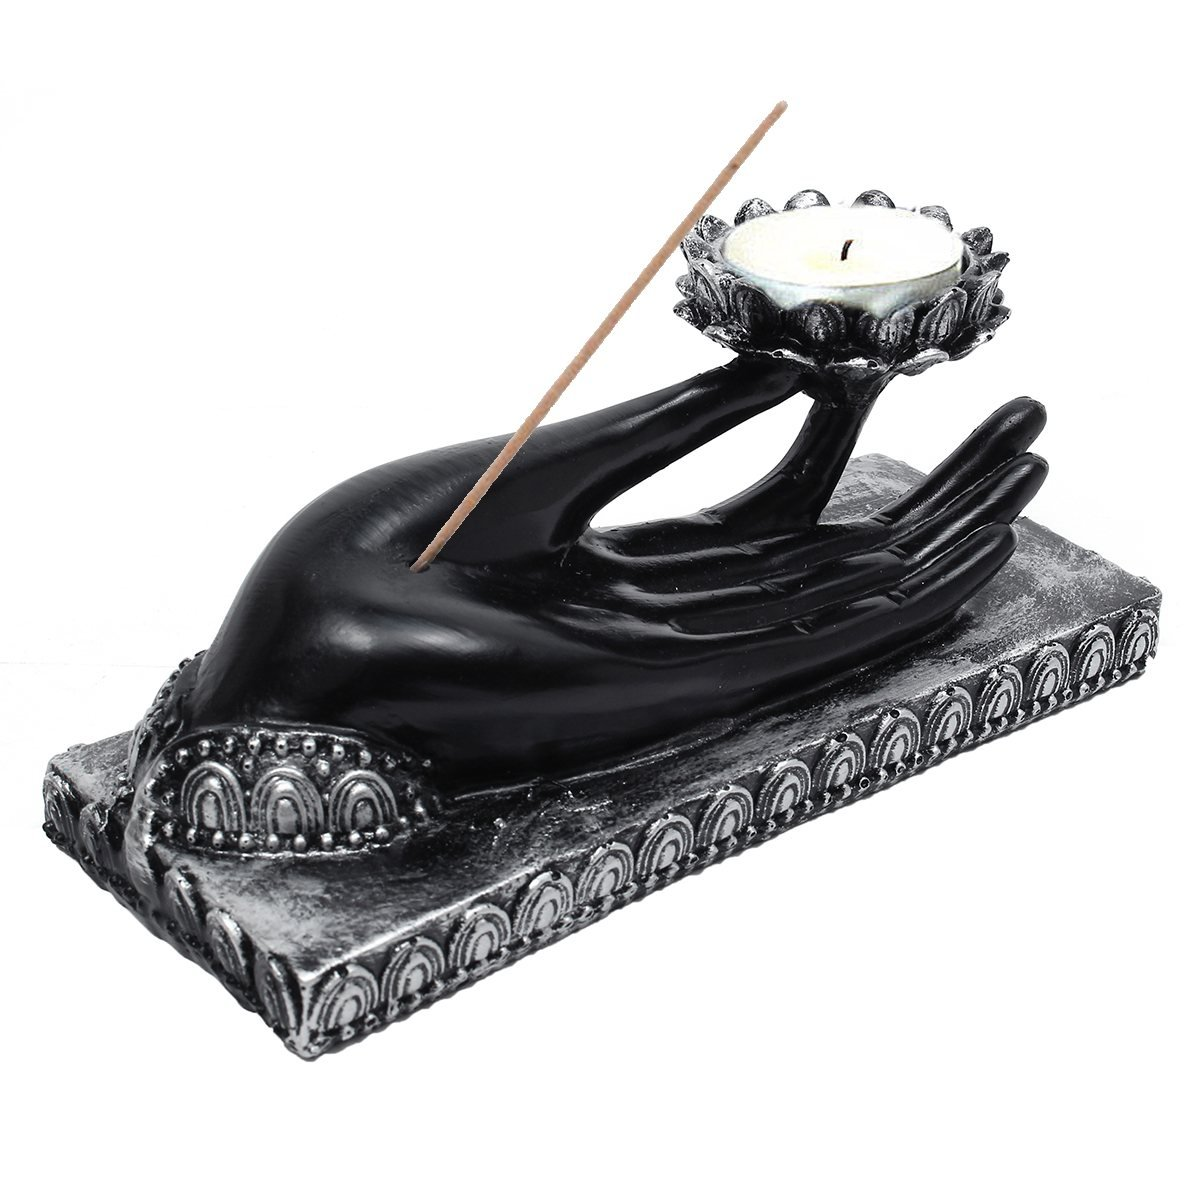 Resin Tibet Buddha Hand Tealight Candle Holder Statue Candlestick Meditation Candle Tray Home Office Decoration Crafts 18cm Katoot